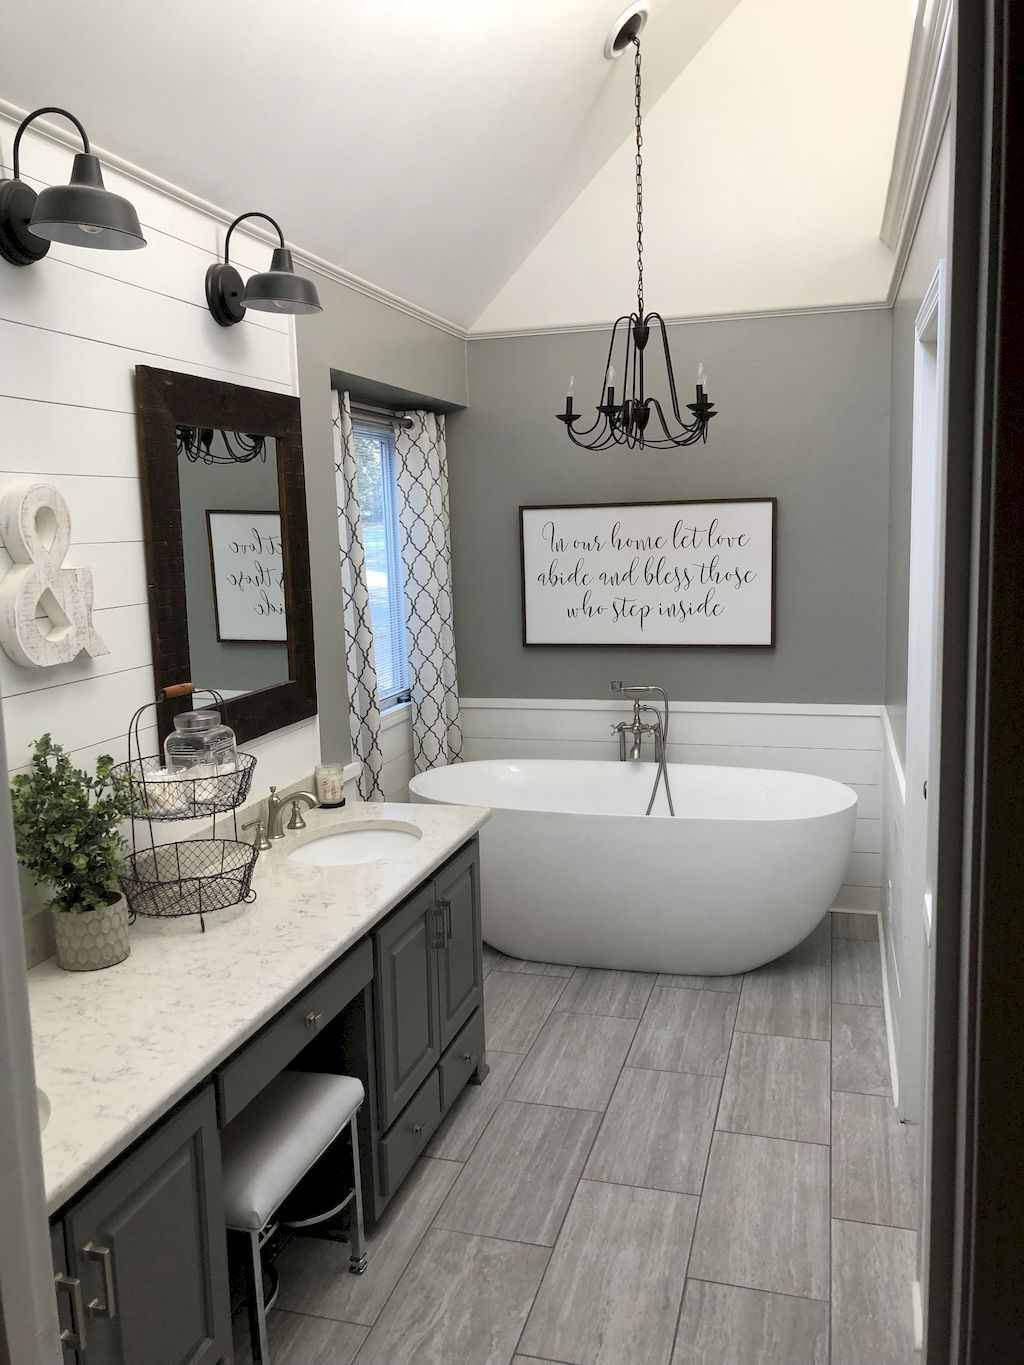 Cool 80 Cool Small Farmhouse Bathroom Remodel Design Ideas Https Wholiving Com 80 Cool Sma Bathroom Remodel Master Farmhouse Bathroom Decor Bathrooms Remodel